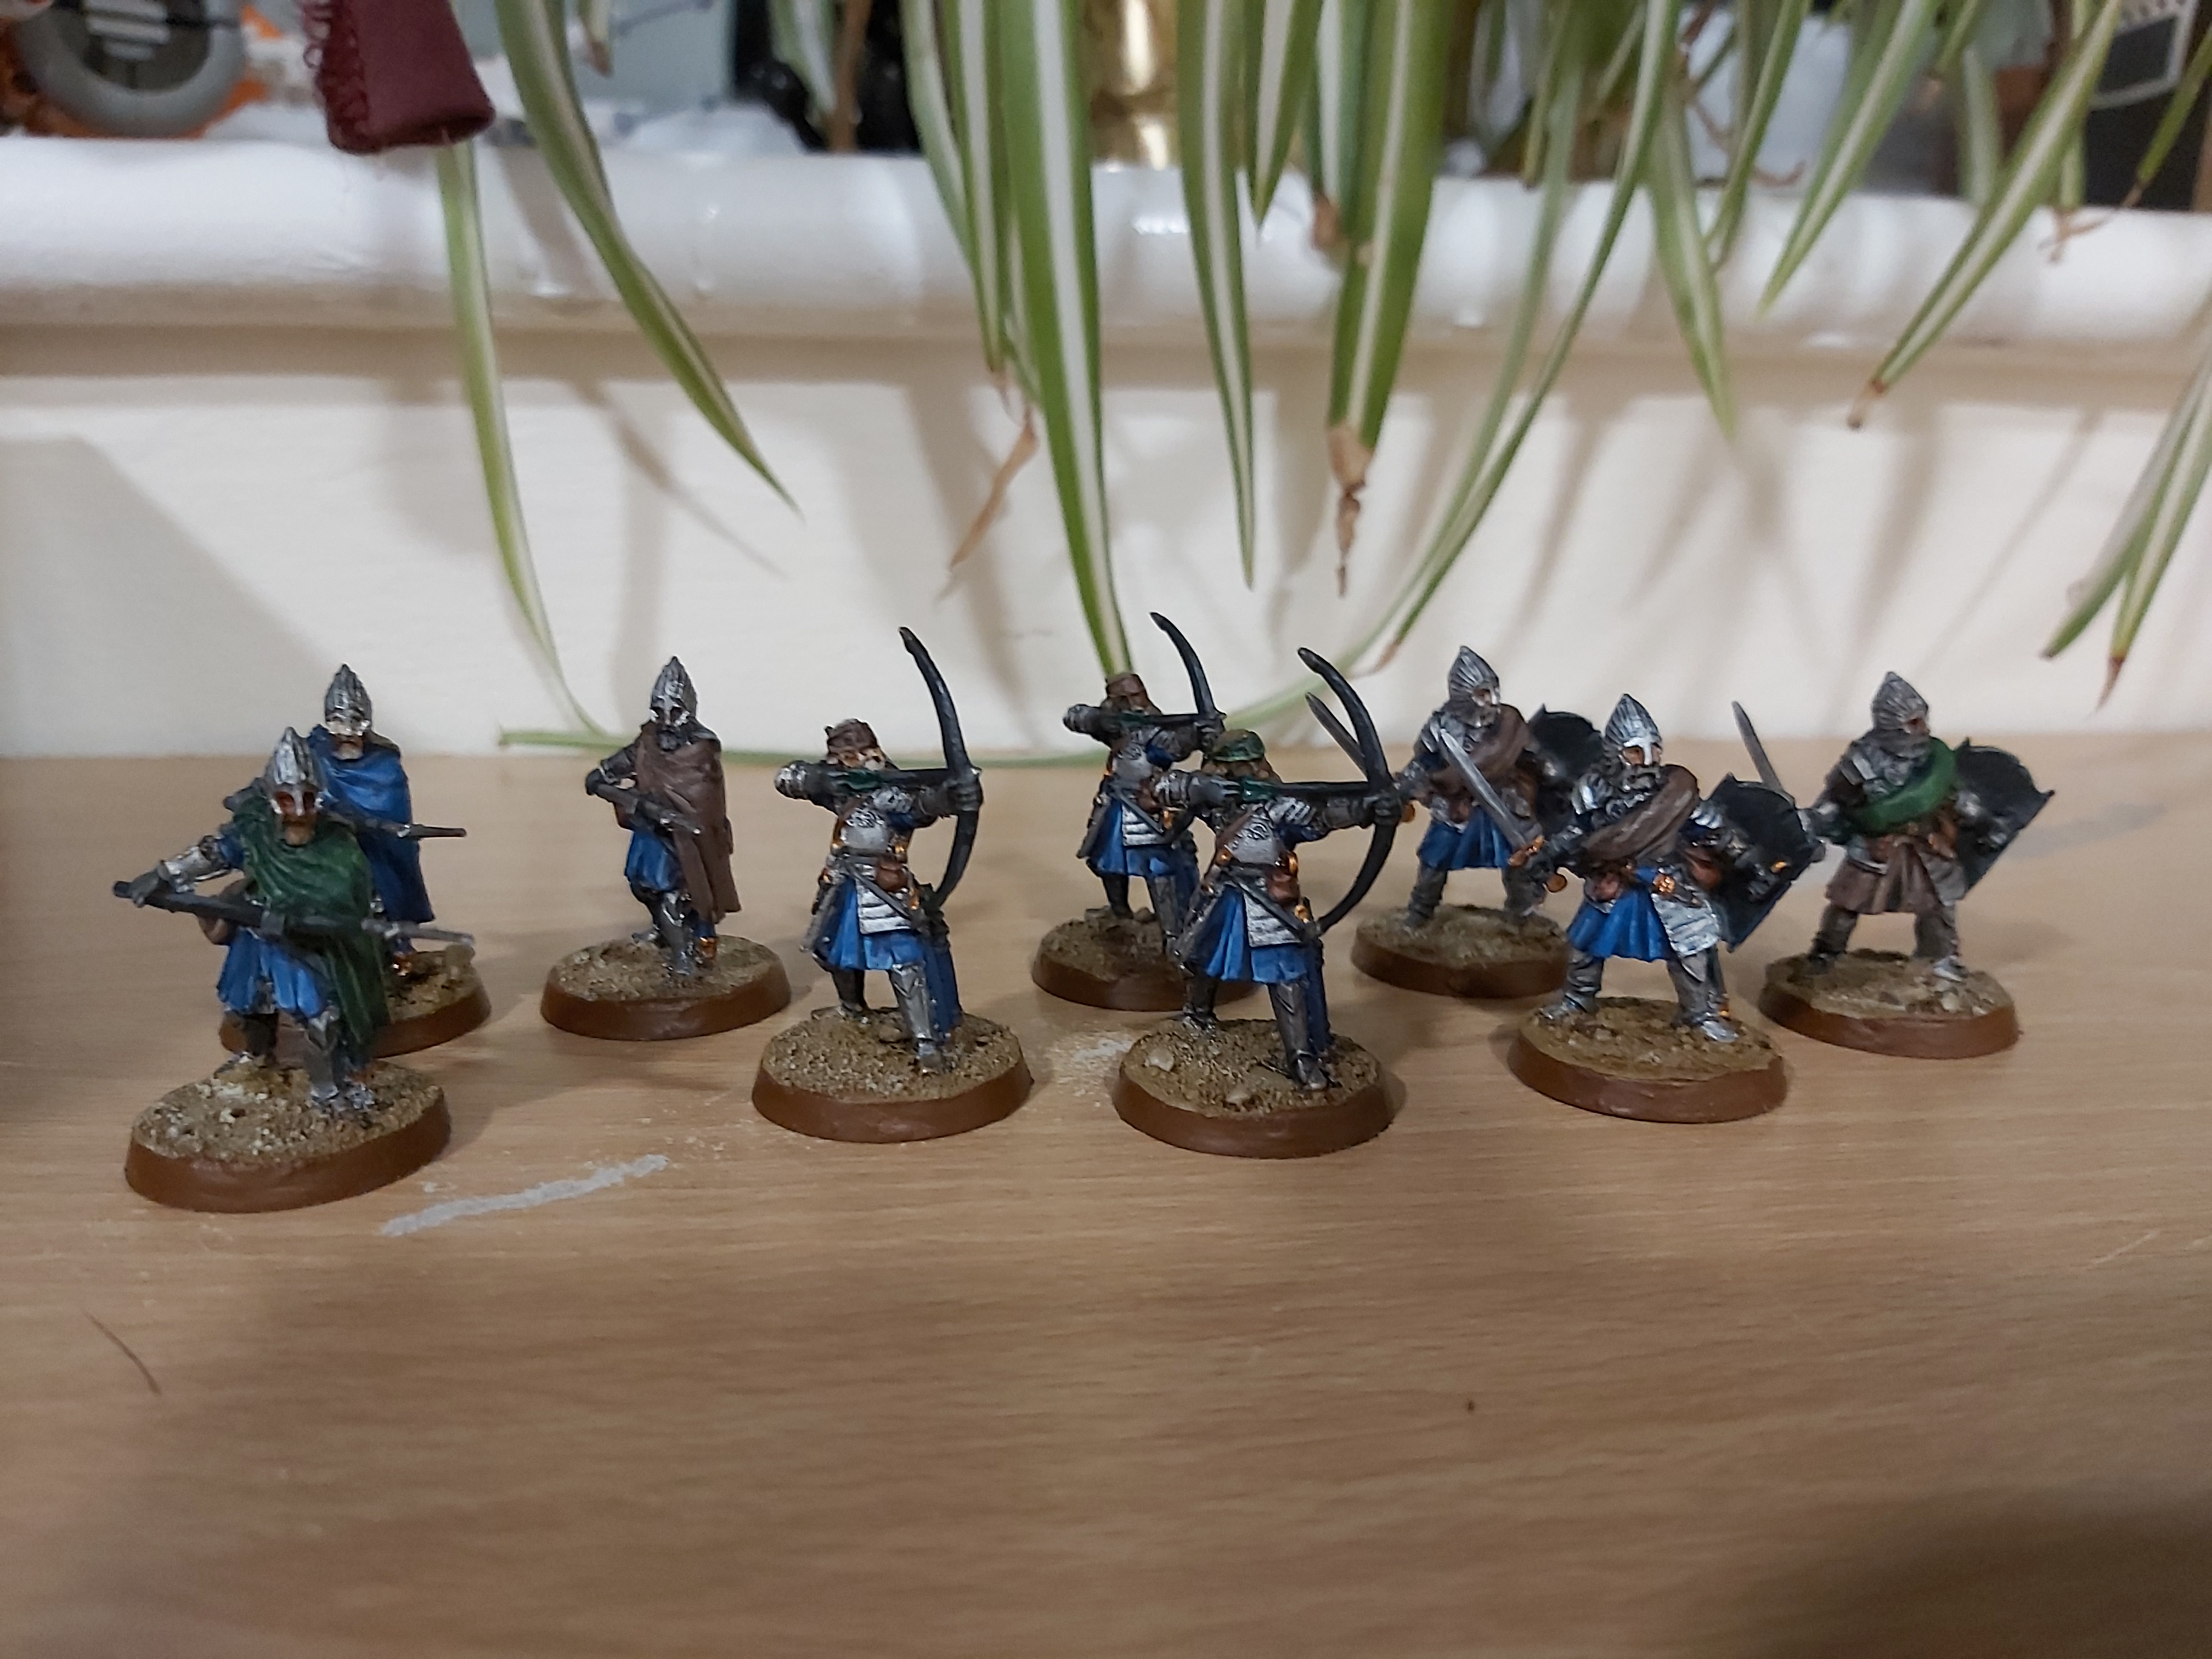 A group of model soldiers, with battered armour and tattered cloaks.